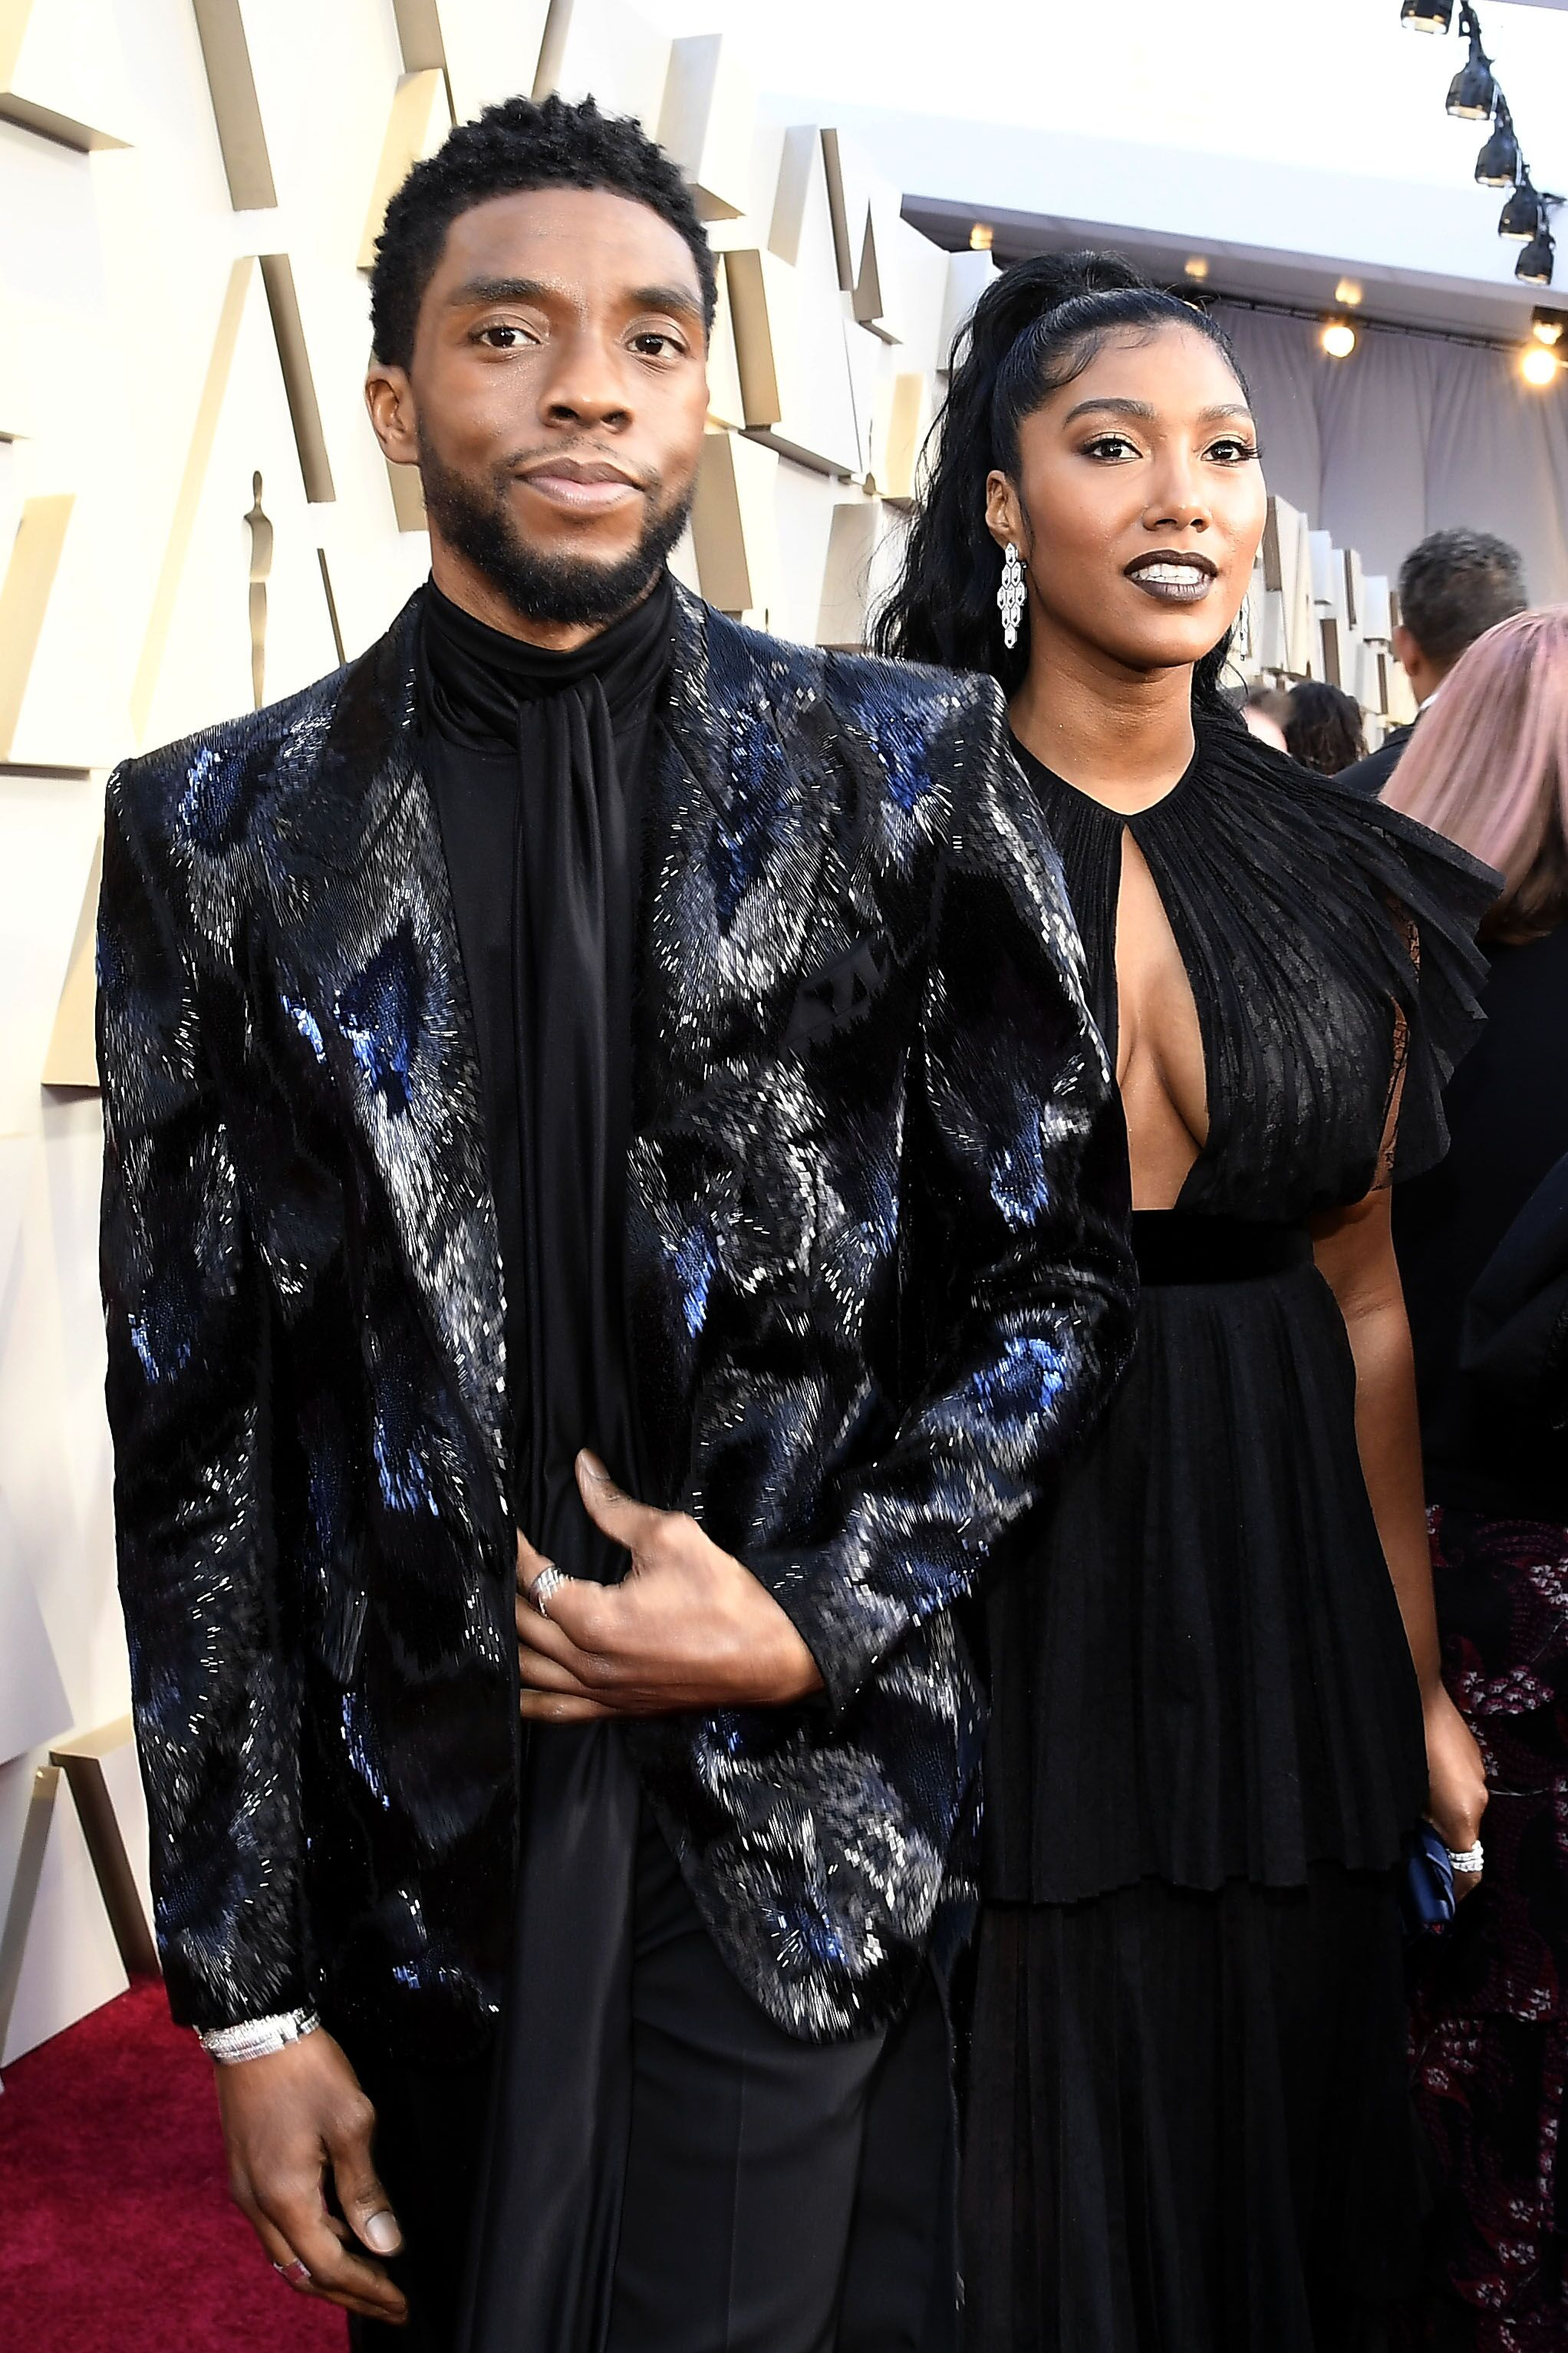 Chadwick Boseman and Taylor Simone Ledward attend the Academy Awards   Source: Getty Images/GlobalImagesUkraine